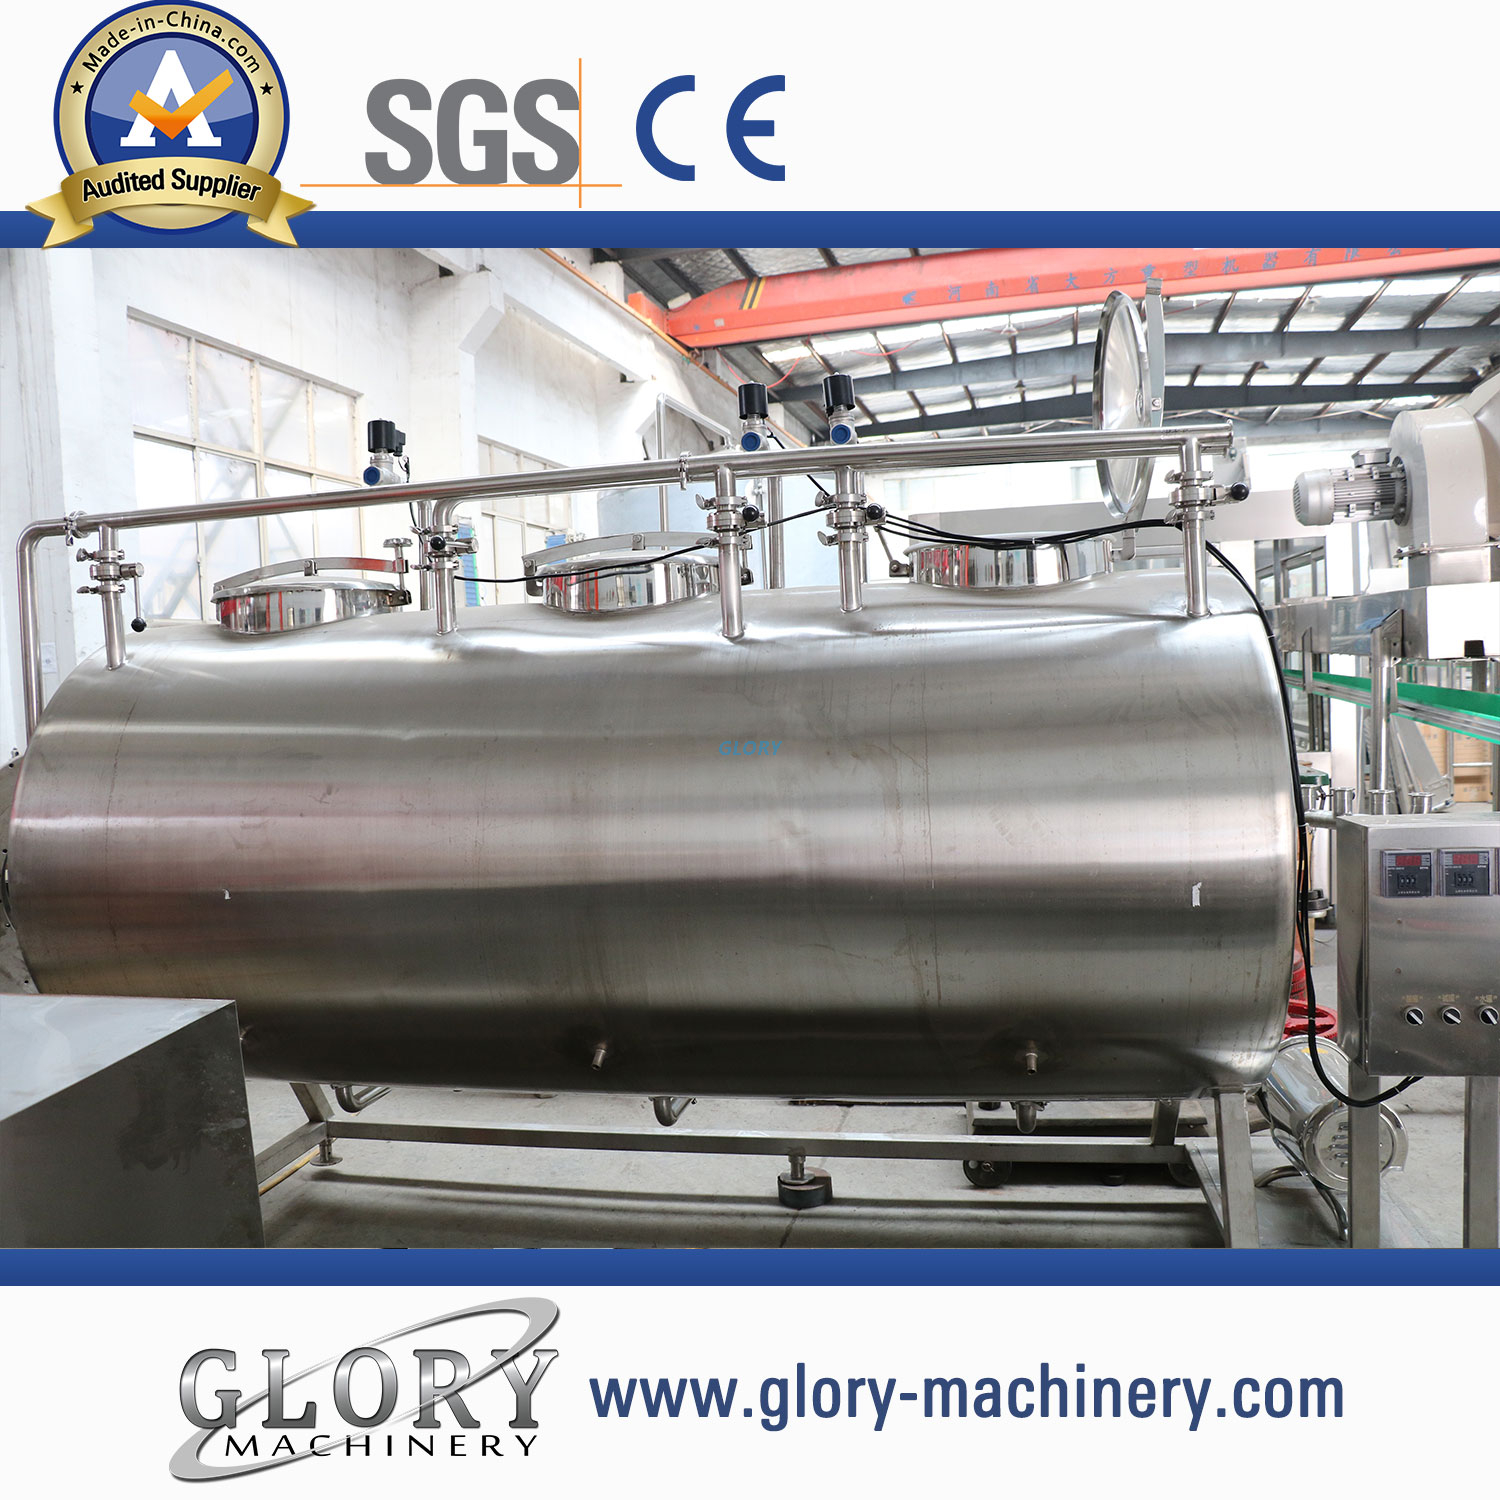 Semi-automatic CIP system for juice and beverage